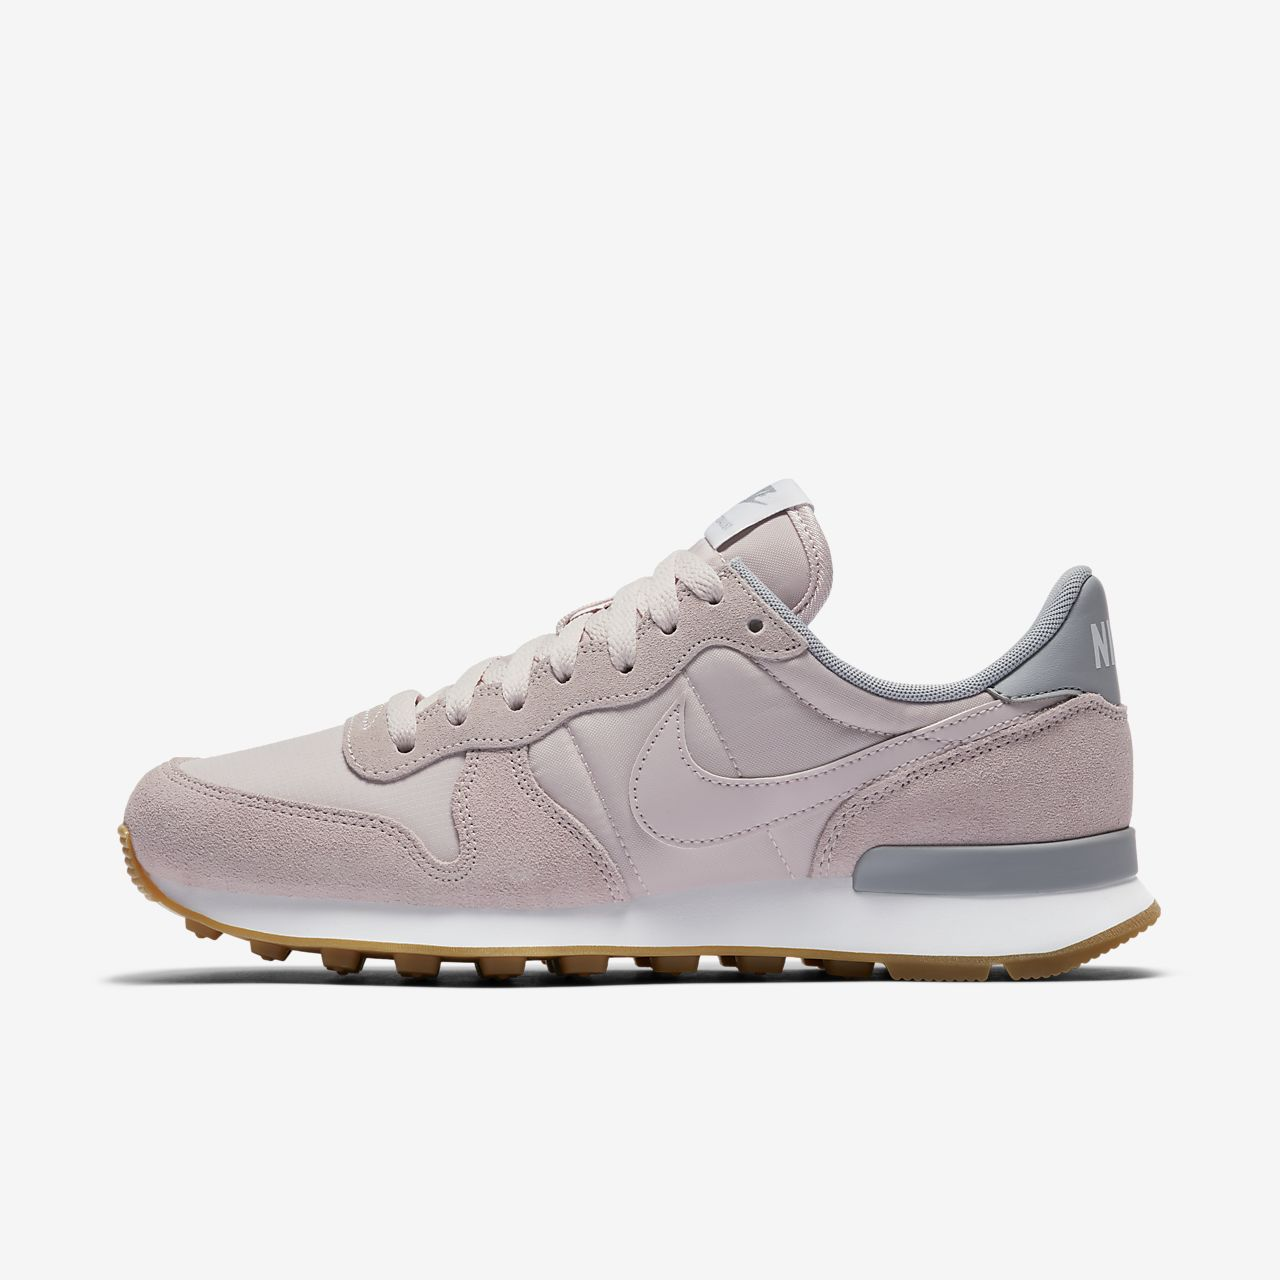 Low Resolution Nike Internationalist Zapatillas - Mujer Nike  Internationalist Zapatillas - Mujer 1a08d48372190